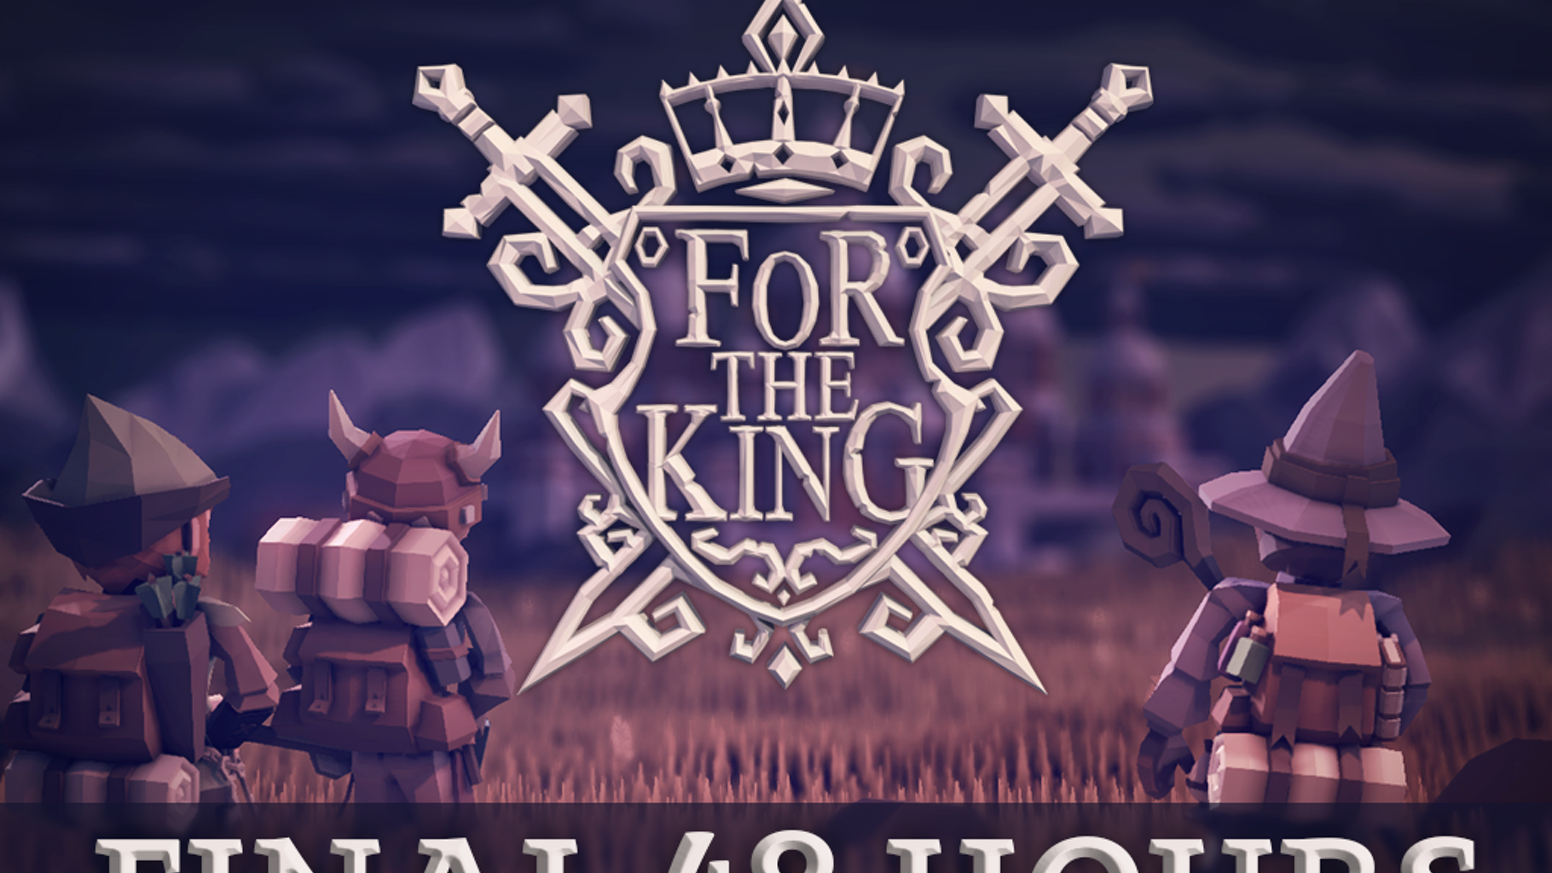 For the King | OnRPG